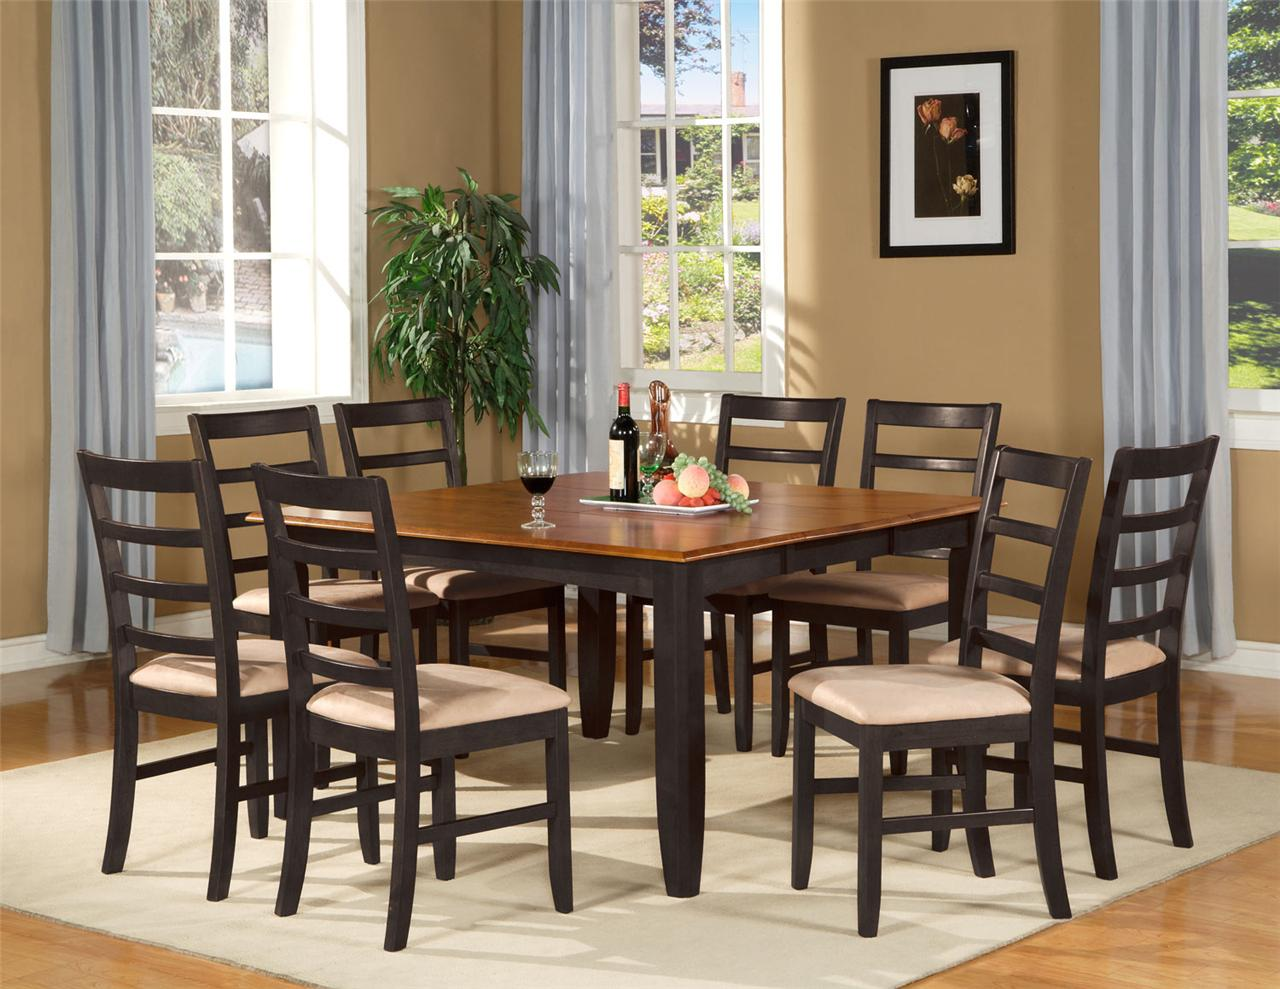 9 pc square dinette dining room table set and 8 chairs ebay. Black Bedroom Furniture Sets. Home Design Ideas